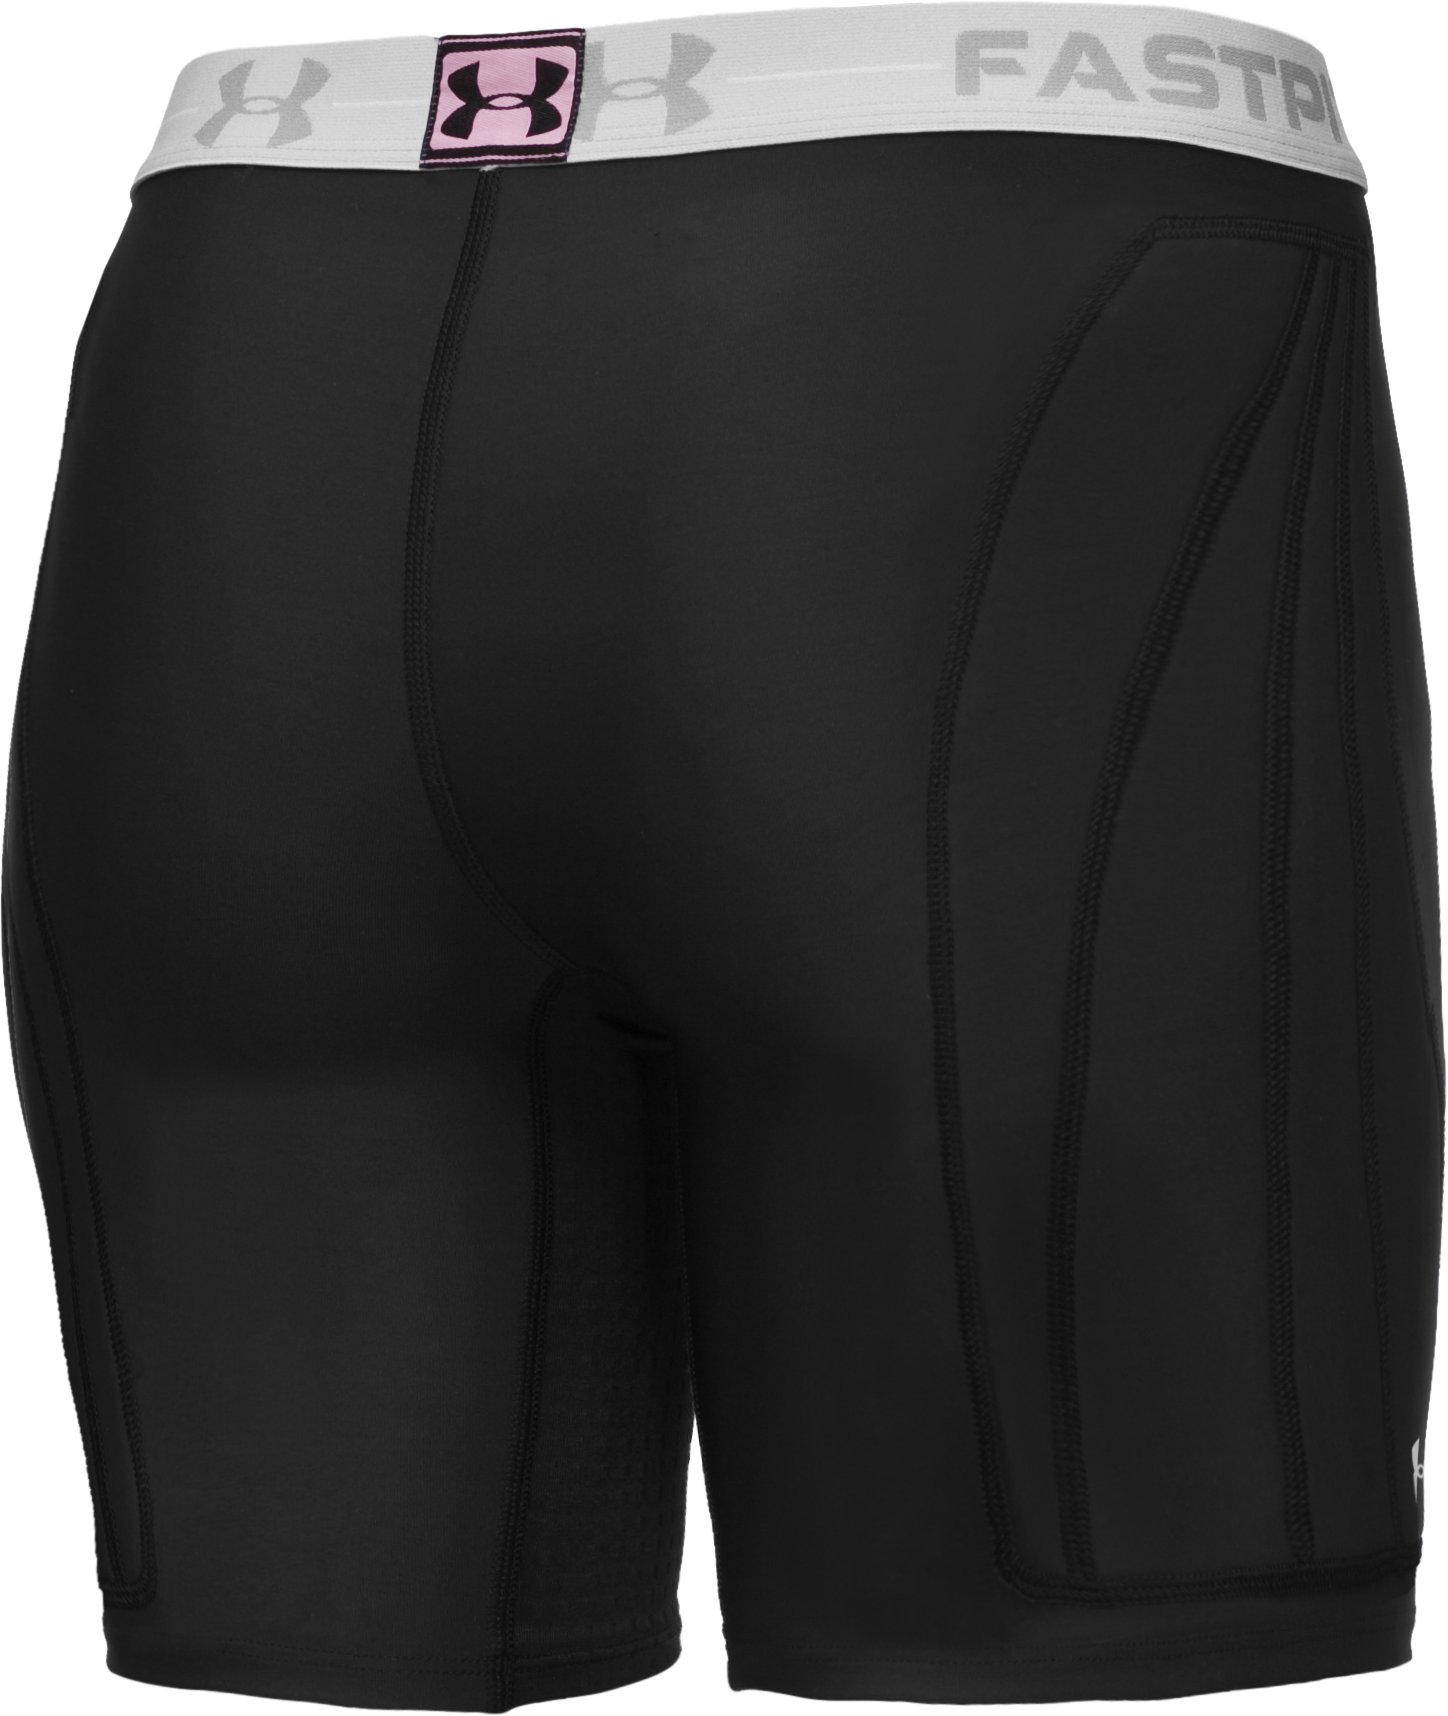 "Women's UA Shield 7"" Slider Shorts, Black"